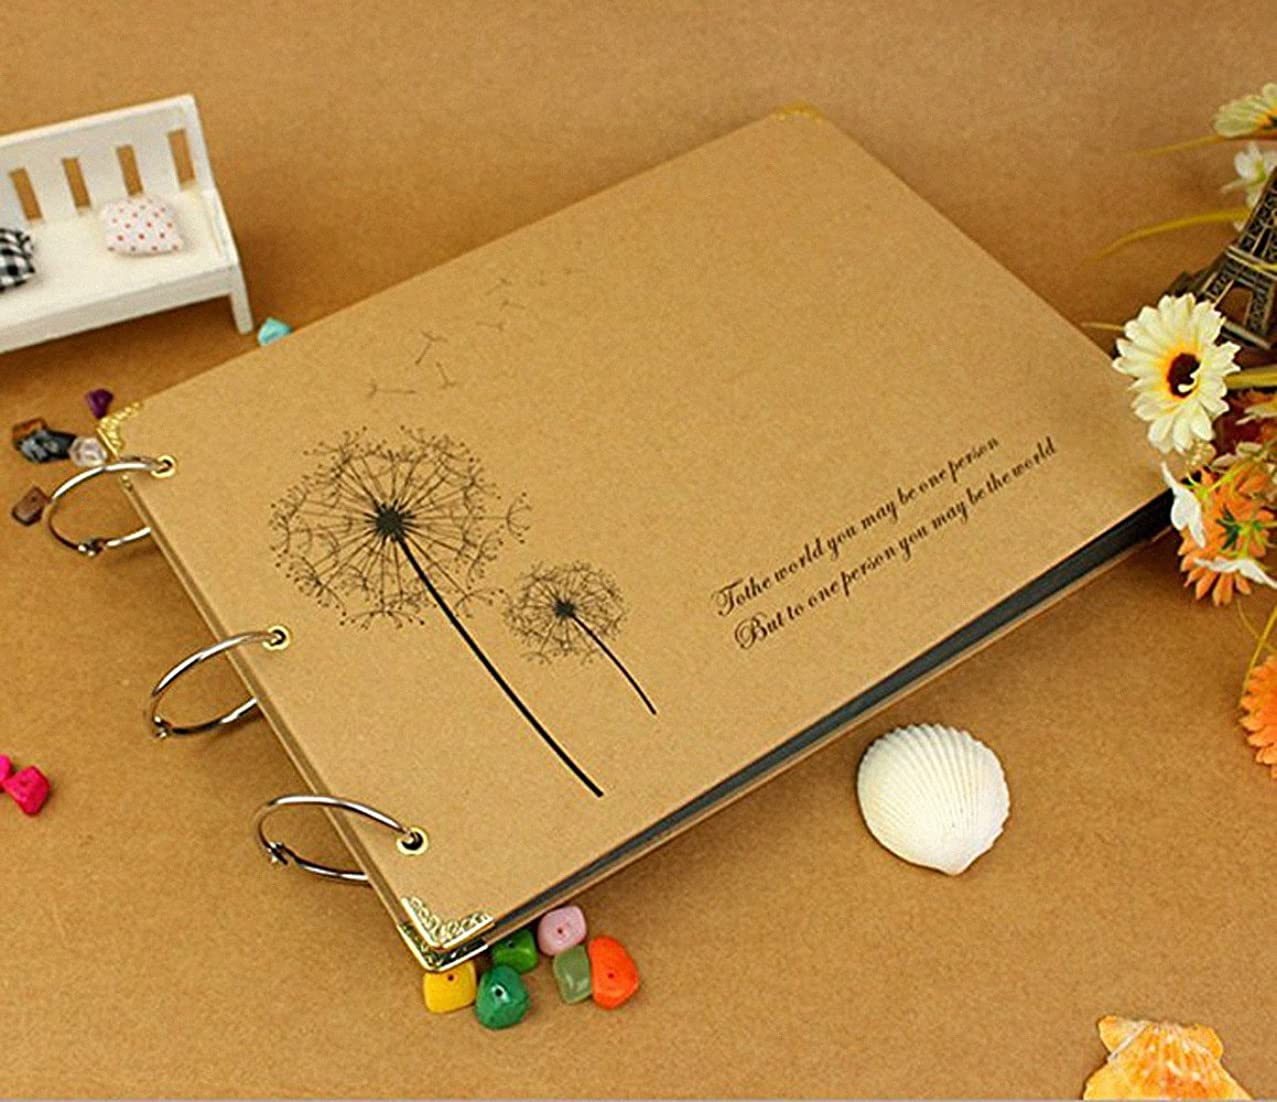 Kisoy Scrapbook Retro Classical and Nostalgic Style DIY Photo Albums Loose-leaf Notebooks For Ideal Gifts - Dandelion Love